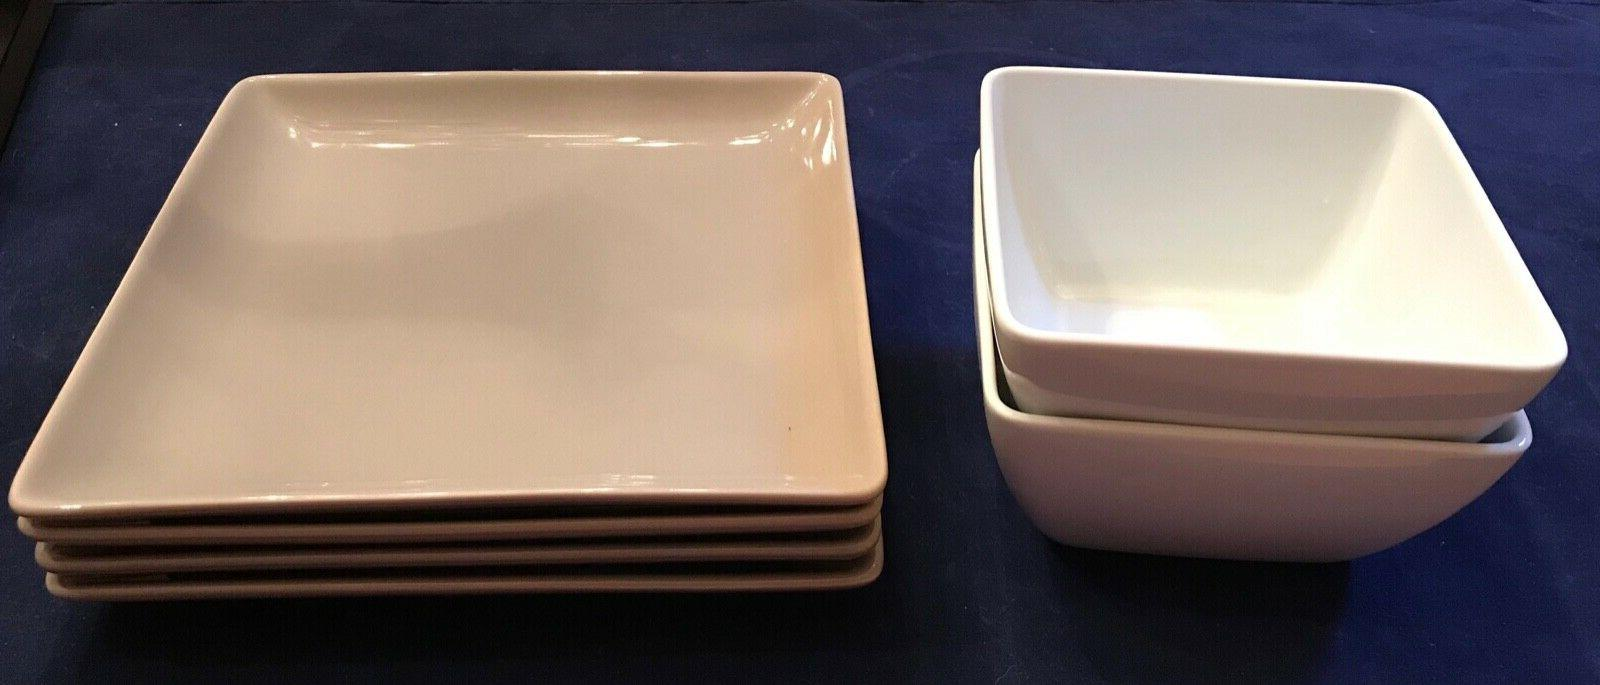 square 8 grey appetizer plates and 5